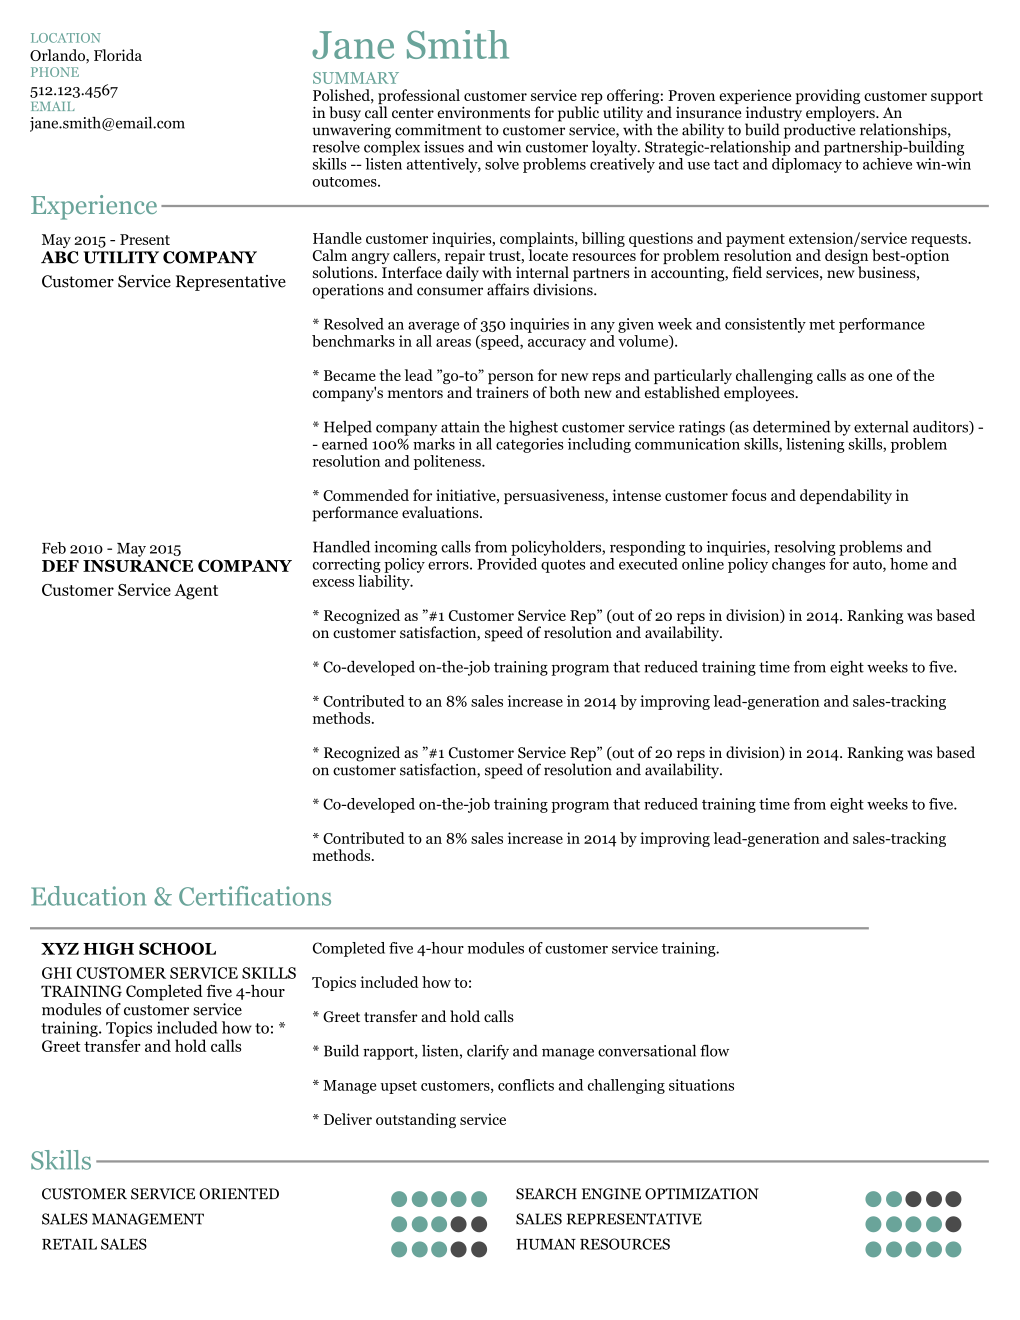 custom resume samples